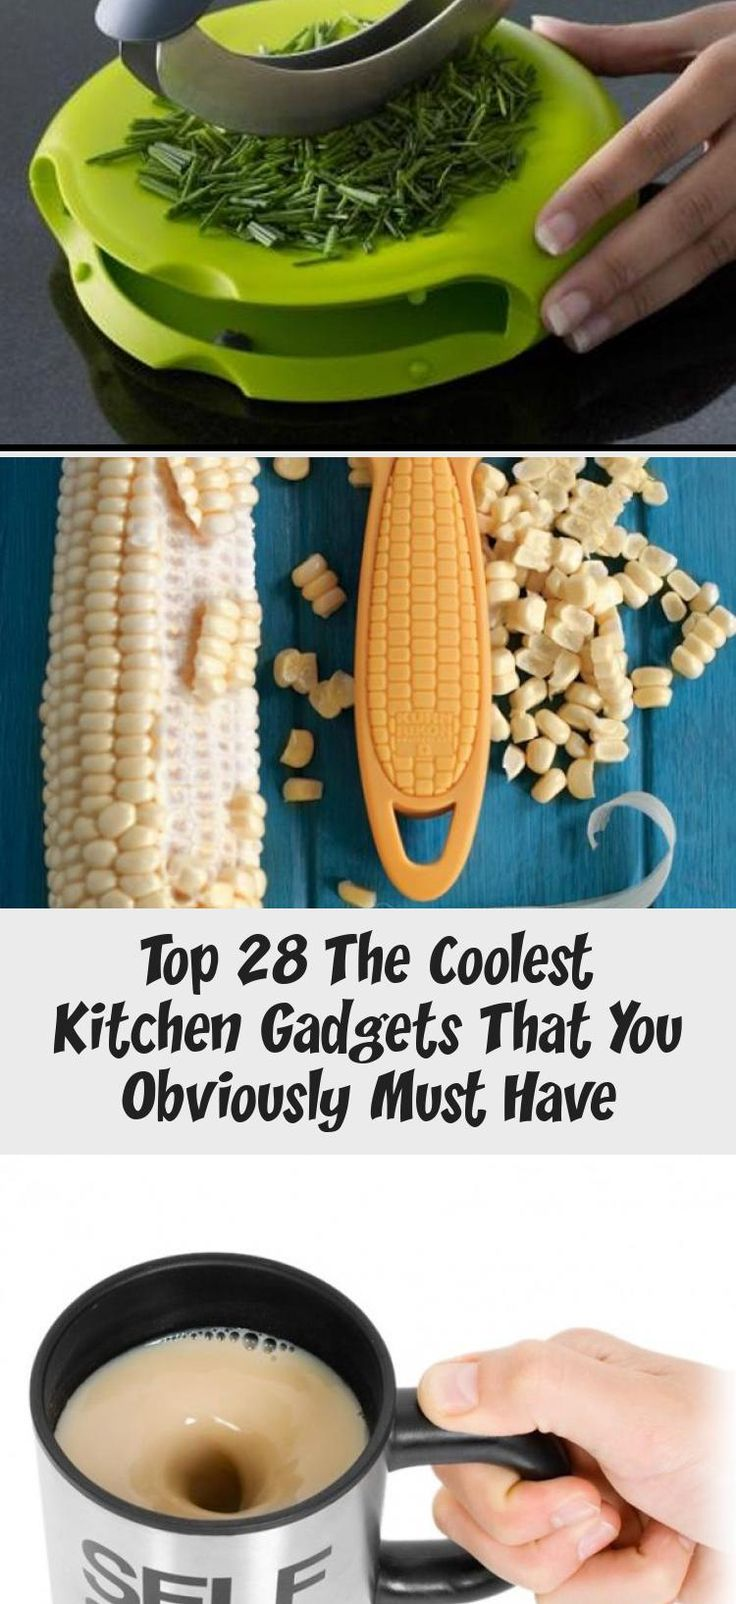 Top 28 The Coolest Kitchen Gadgets That You Obviously Must